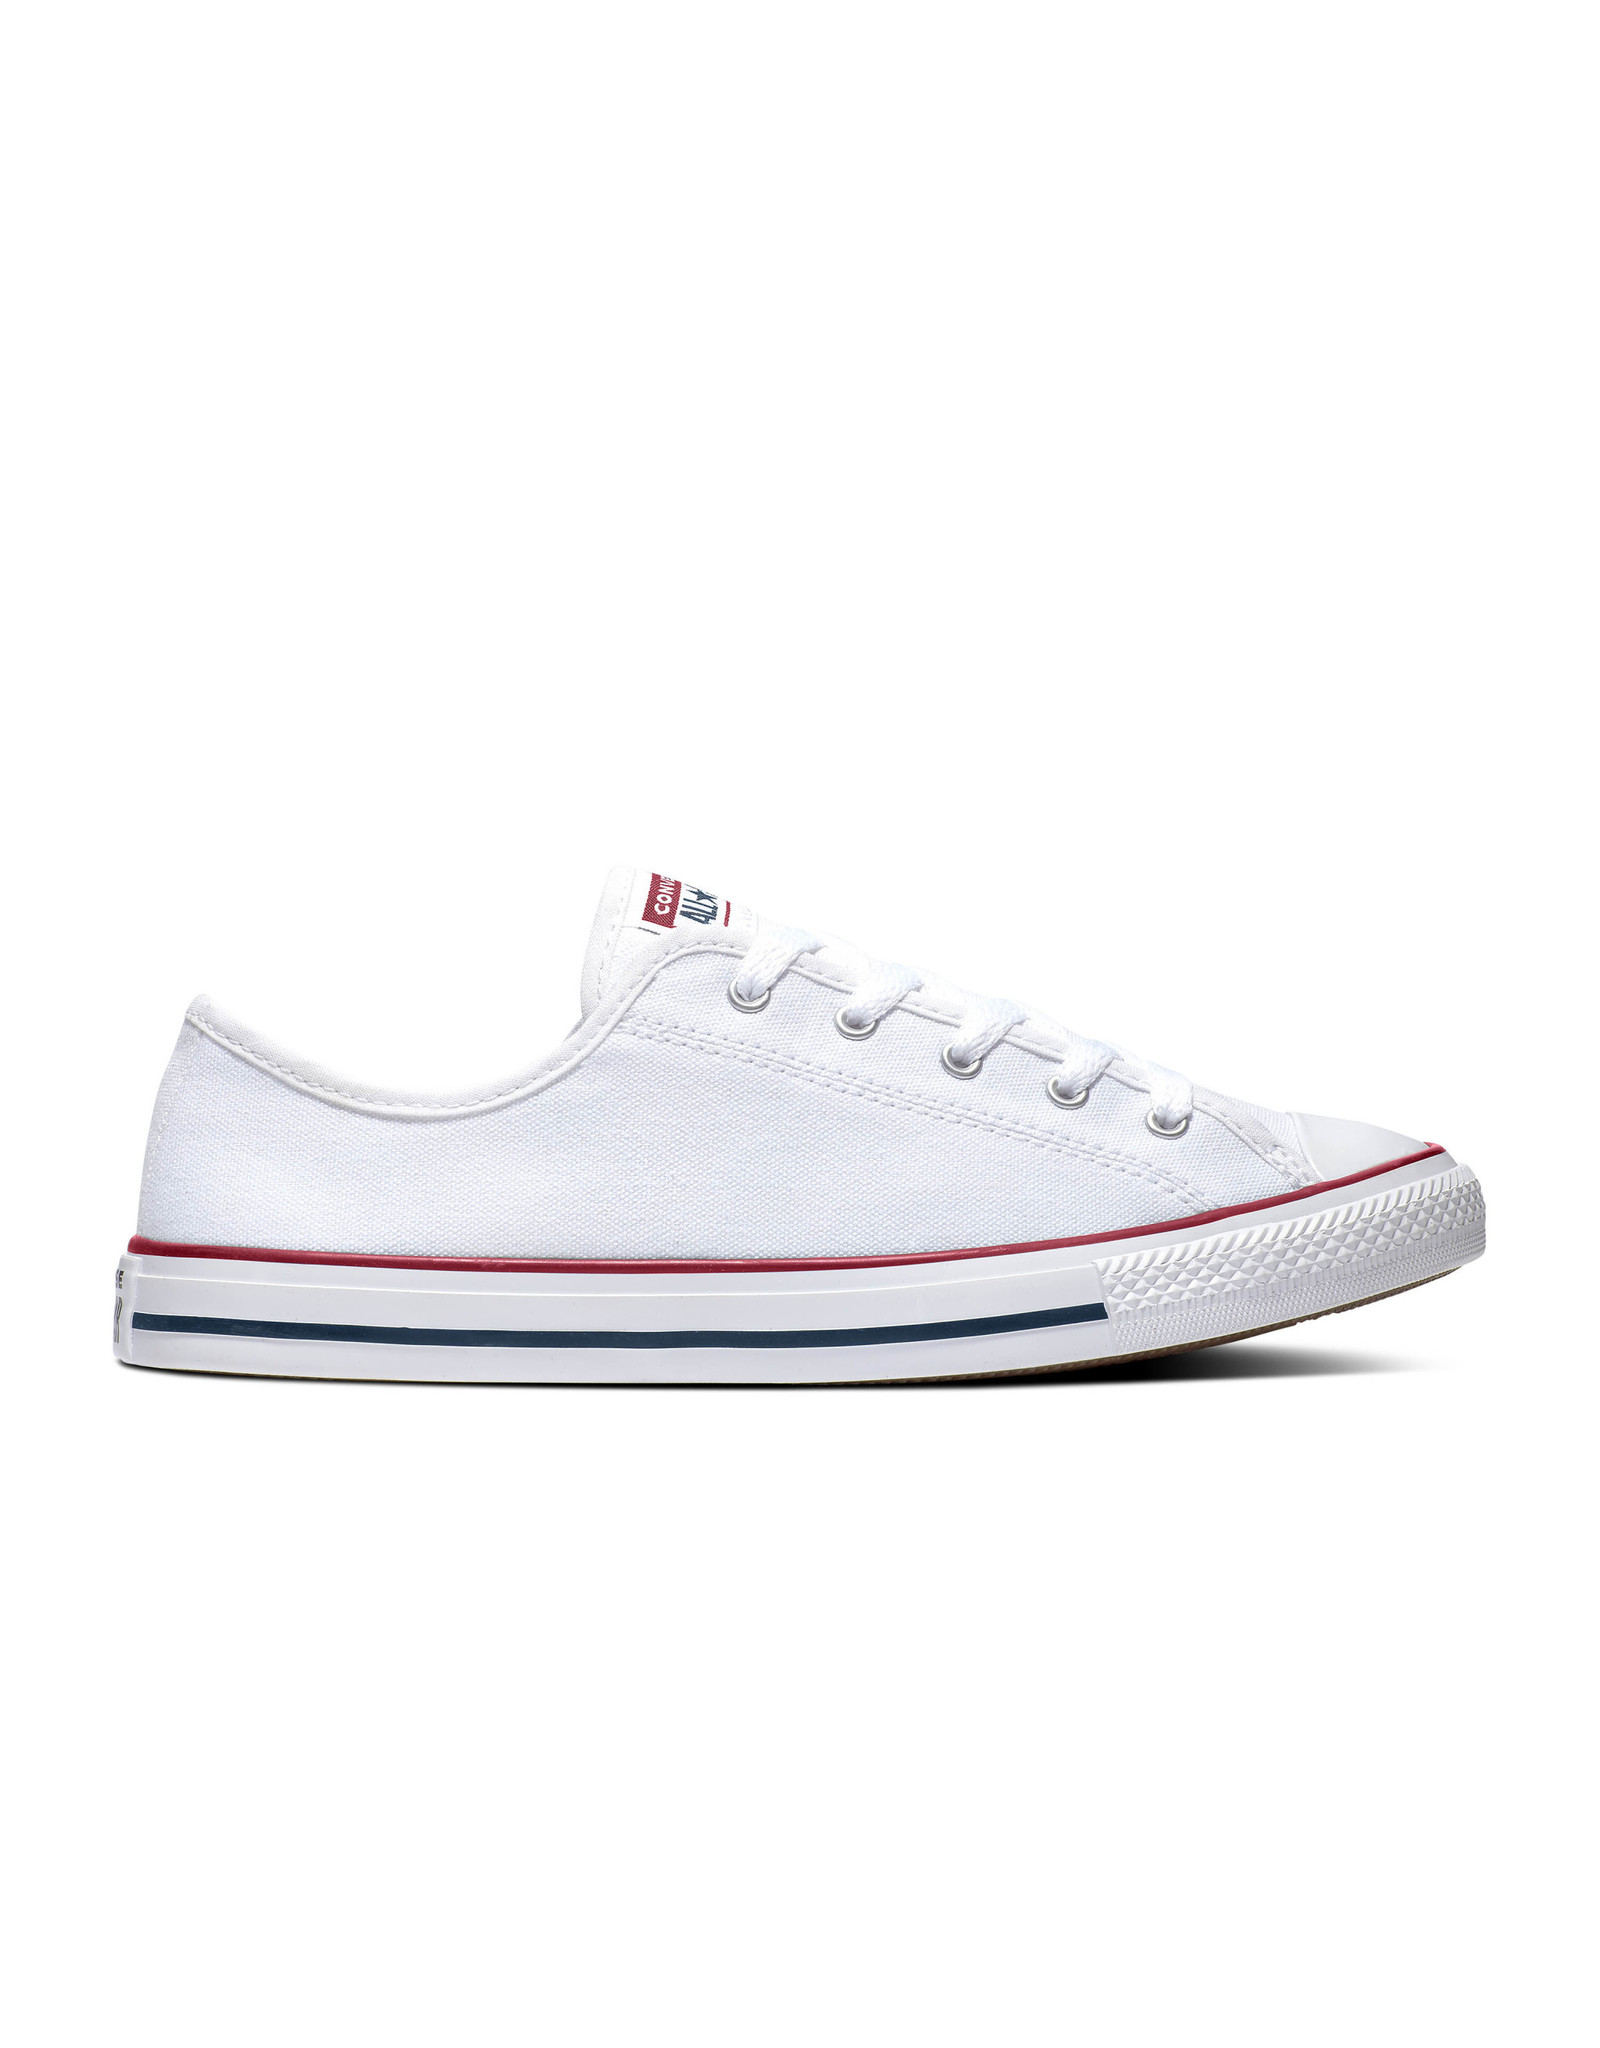 CONVERSE CHUCK TAYLOR ALL STAR DAINTY OX WHITE/RED/BLUE C940W-564981C